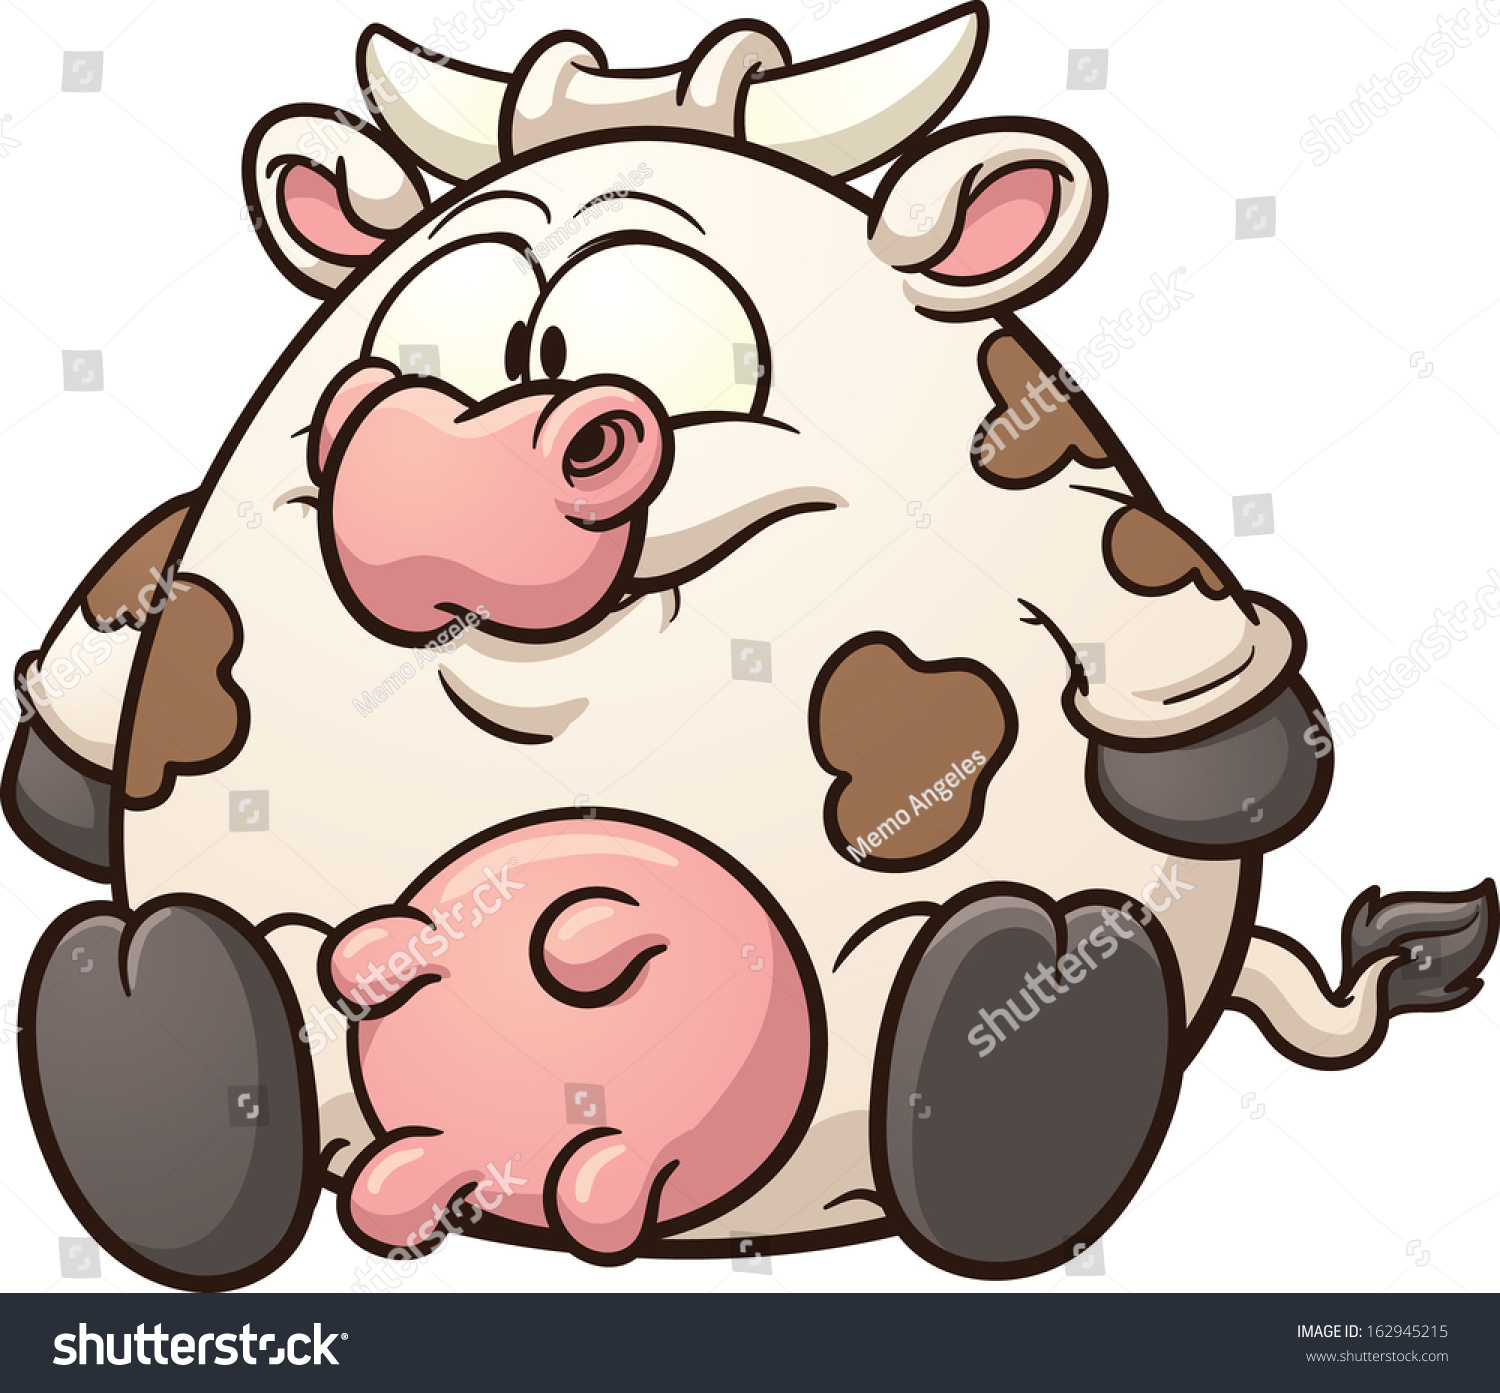 A fat cow with a fat ass 4